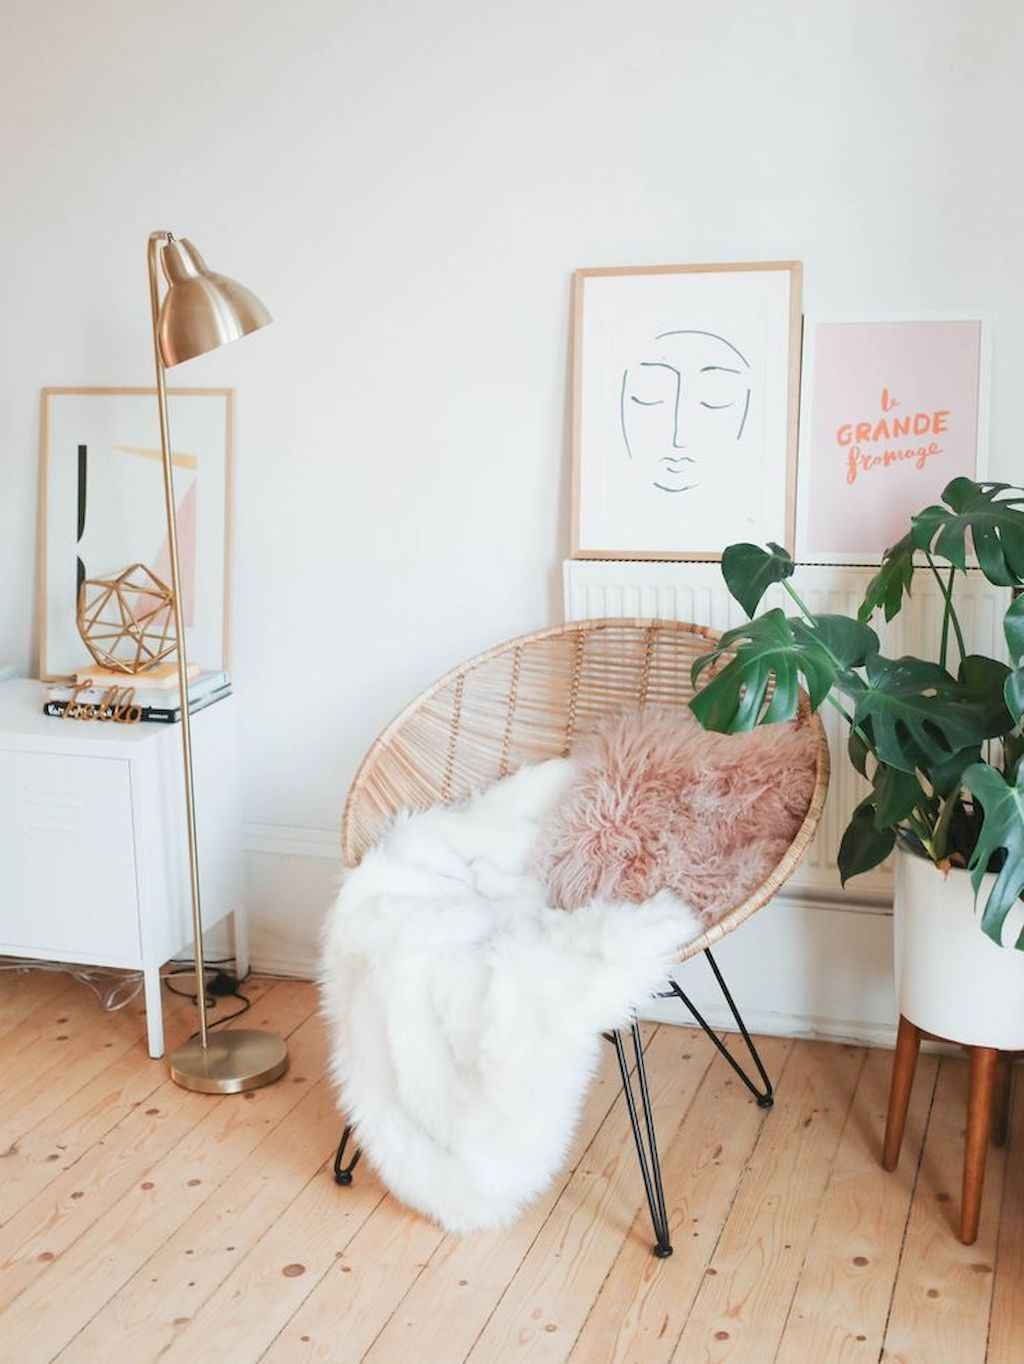 Clever college apartment decorating ideas on a budget (13)